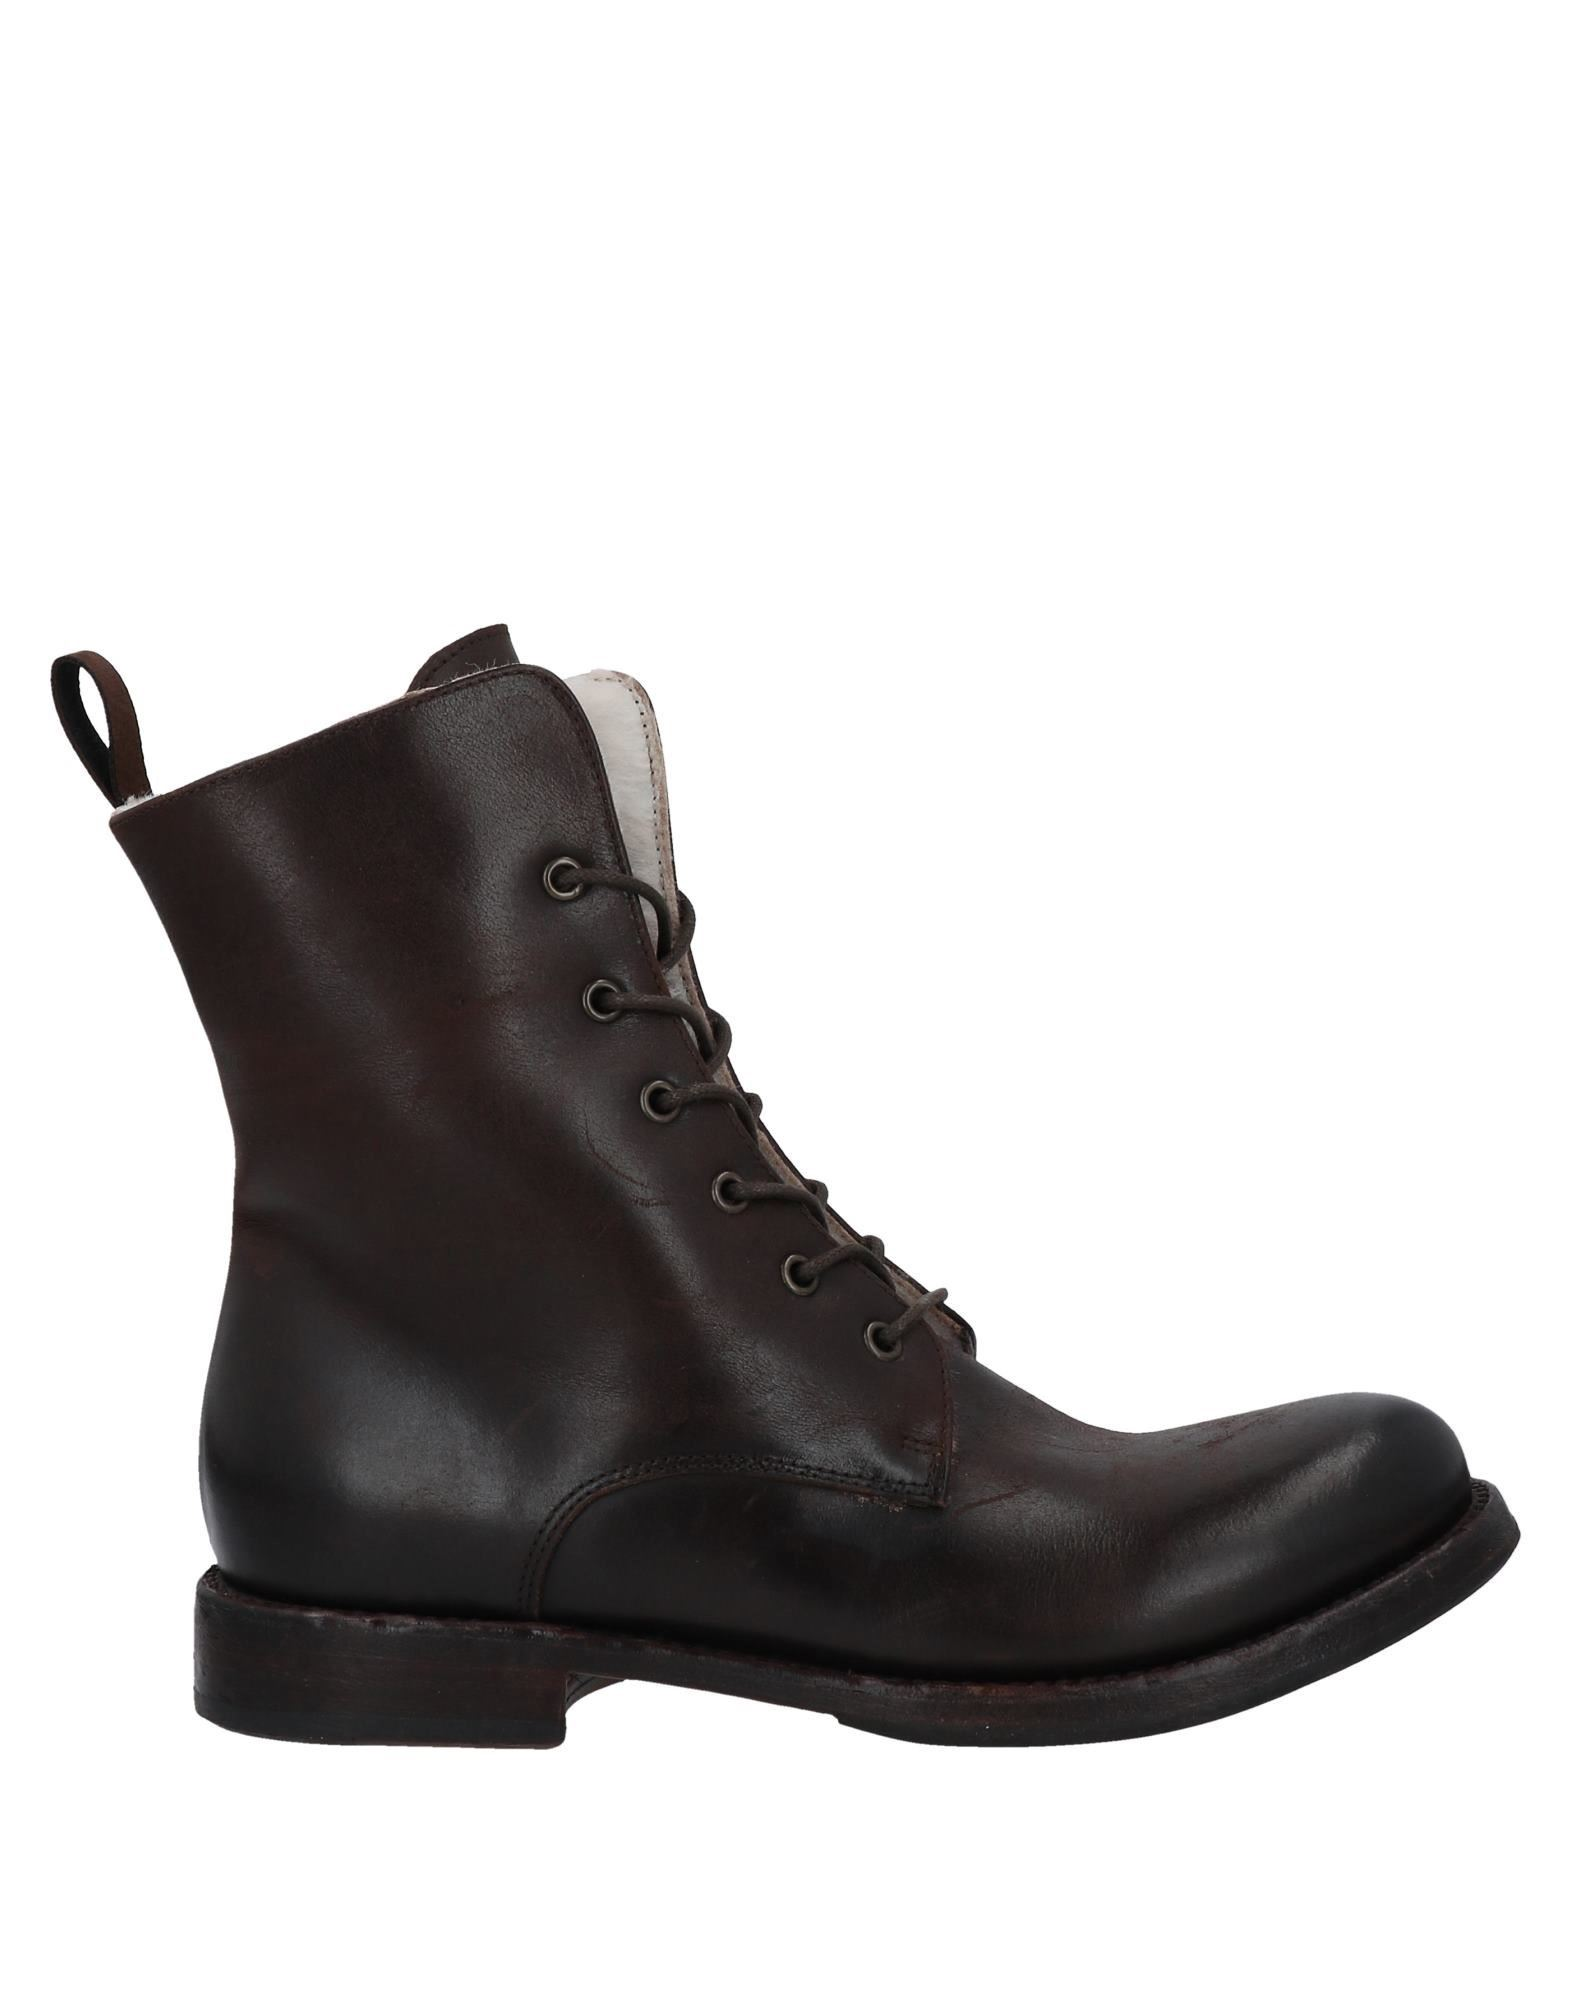 Bcc:'ed Blind Carbon Copied Ankle Boots In Dark Brown